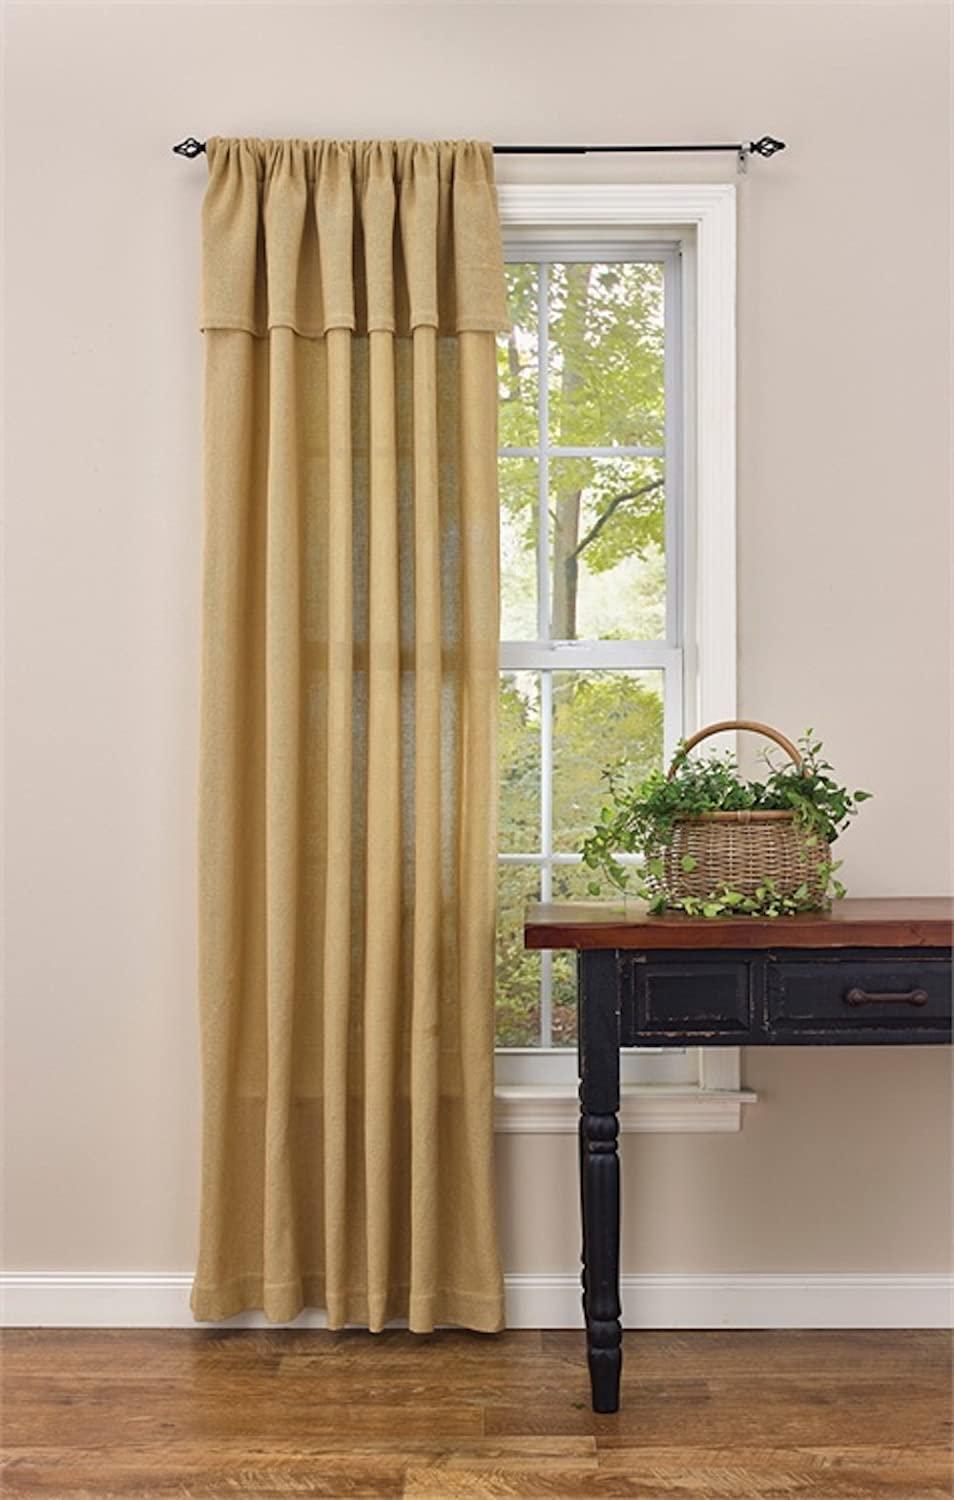 Burlap Rod Pocket Curtain Panel with Attached Valance 56W x 84L